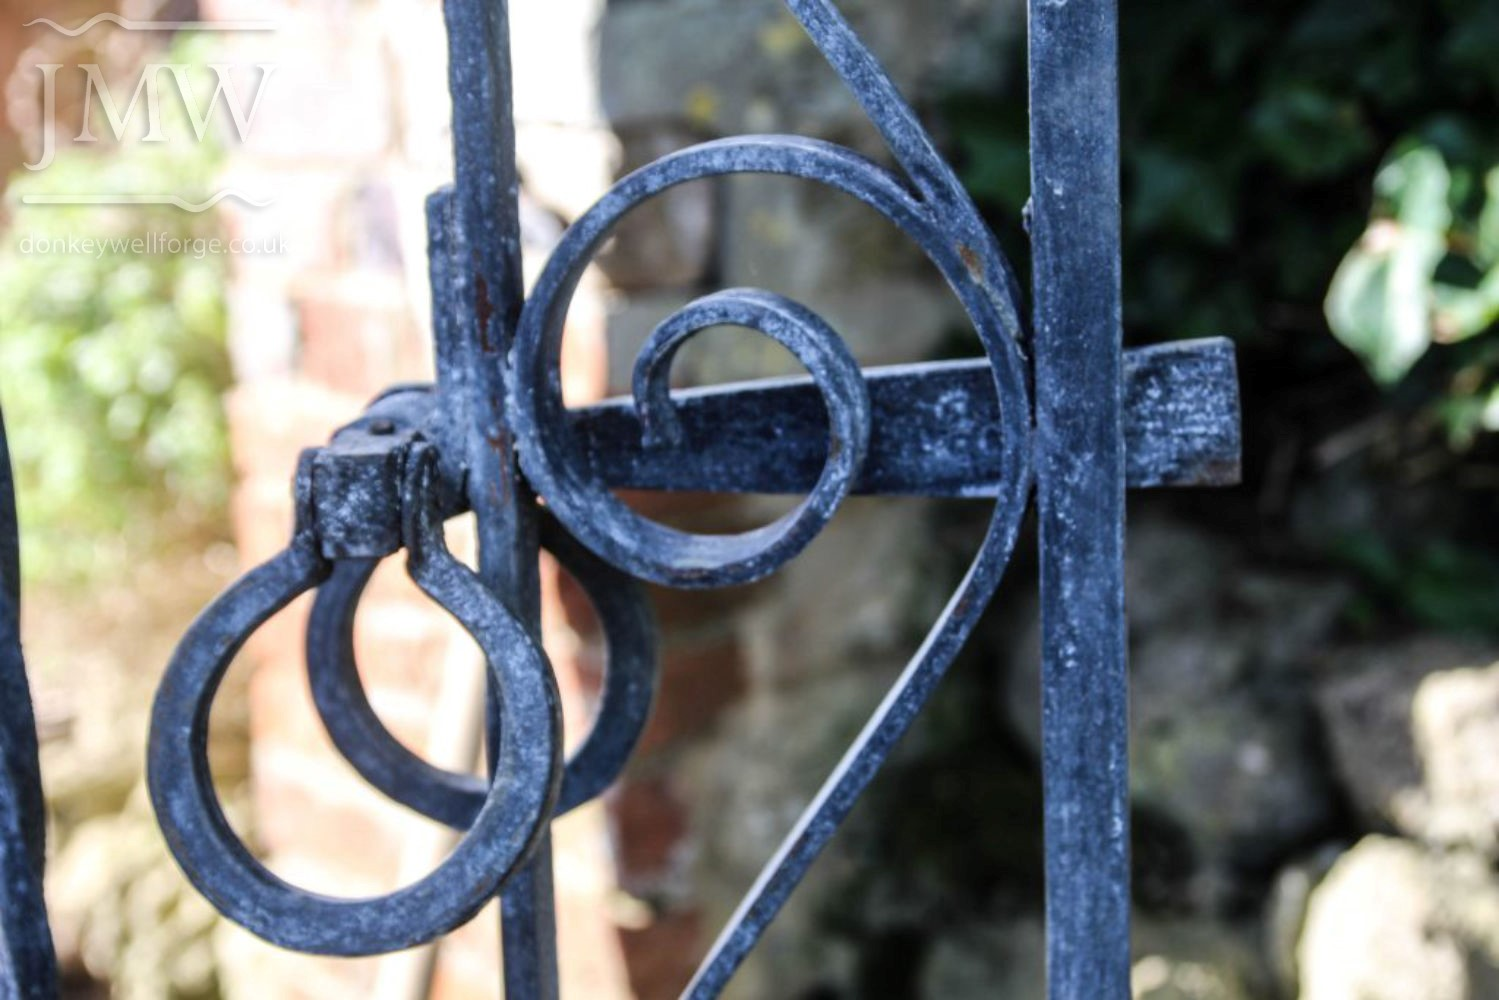 bespokes-arch-gate-garden-iron-ornamental-decorative-blacksmith-latch-donkeywell-forge